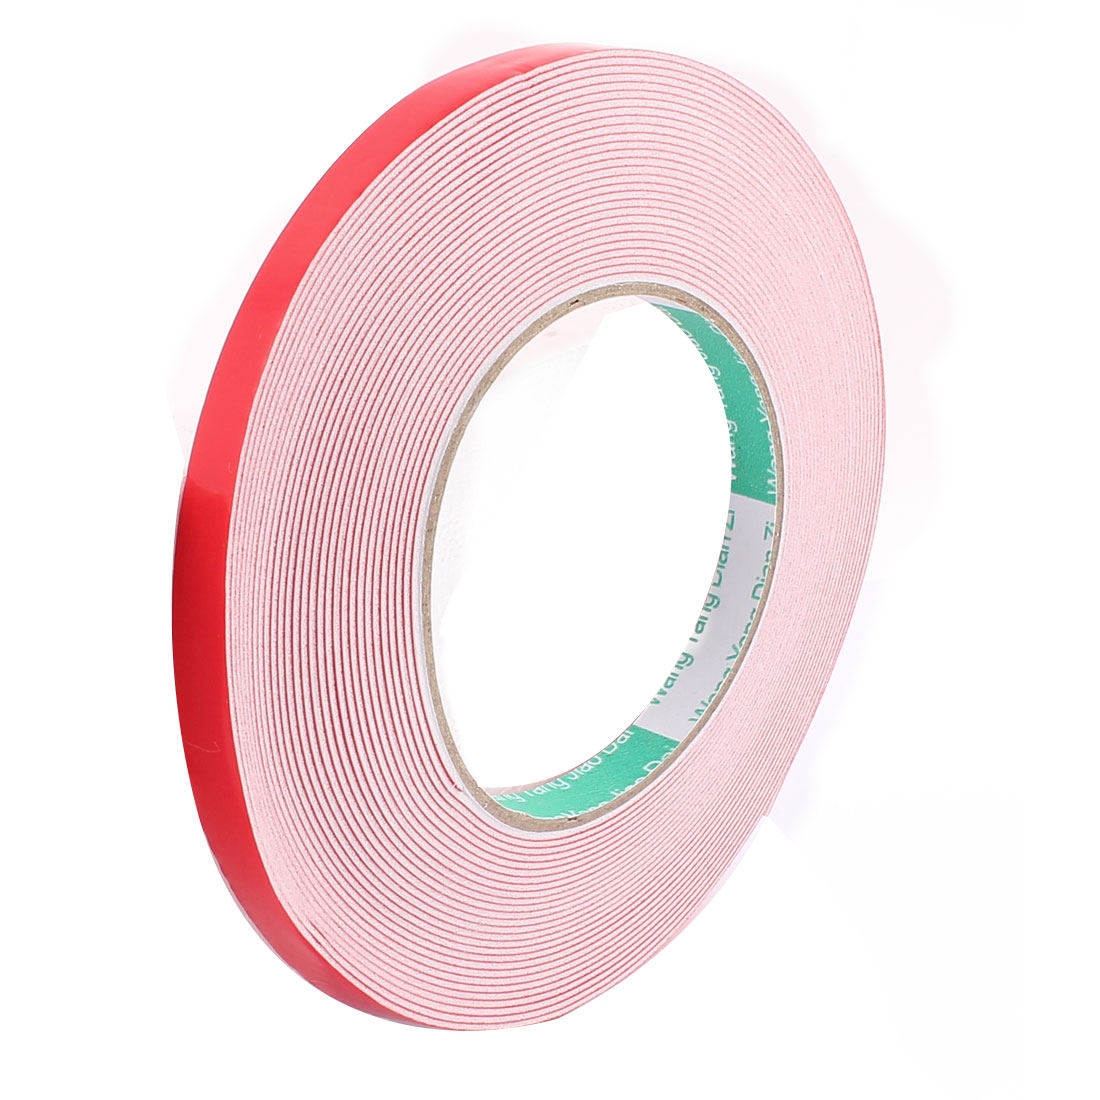 10MM Width 10M Length 1MM Thick White Dual Sided Waterproof Sponge Tape for Car